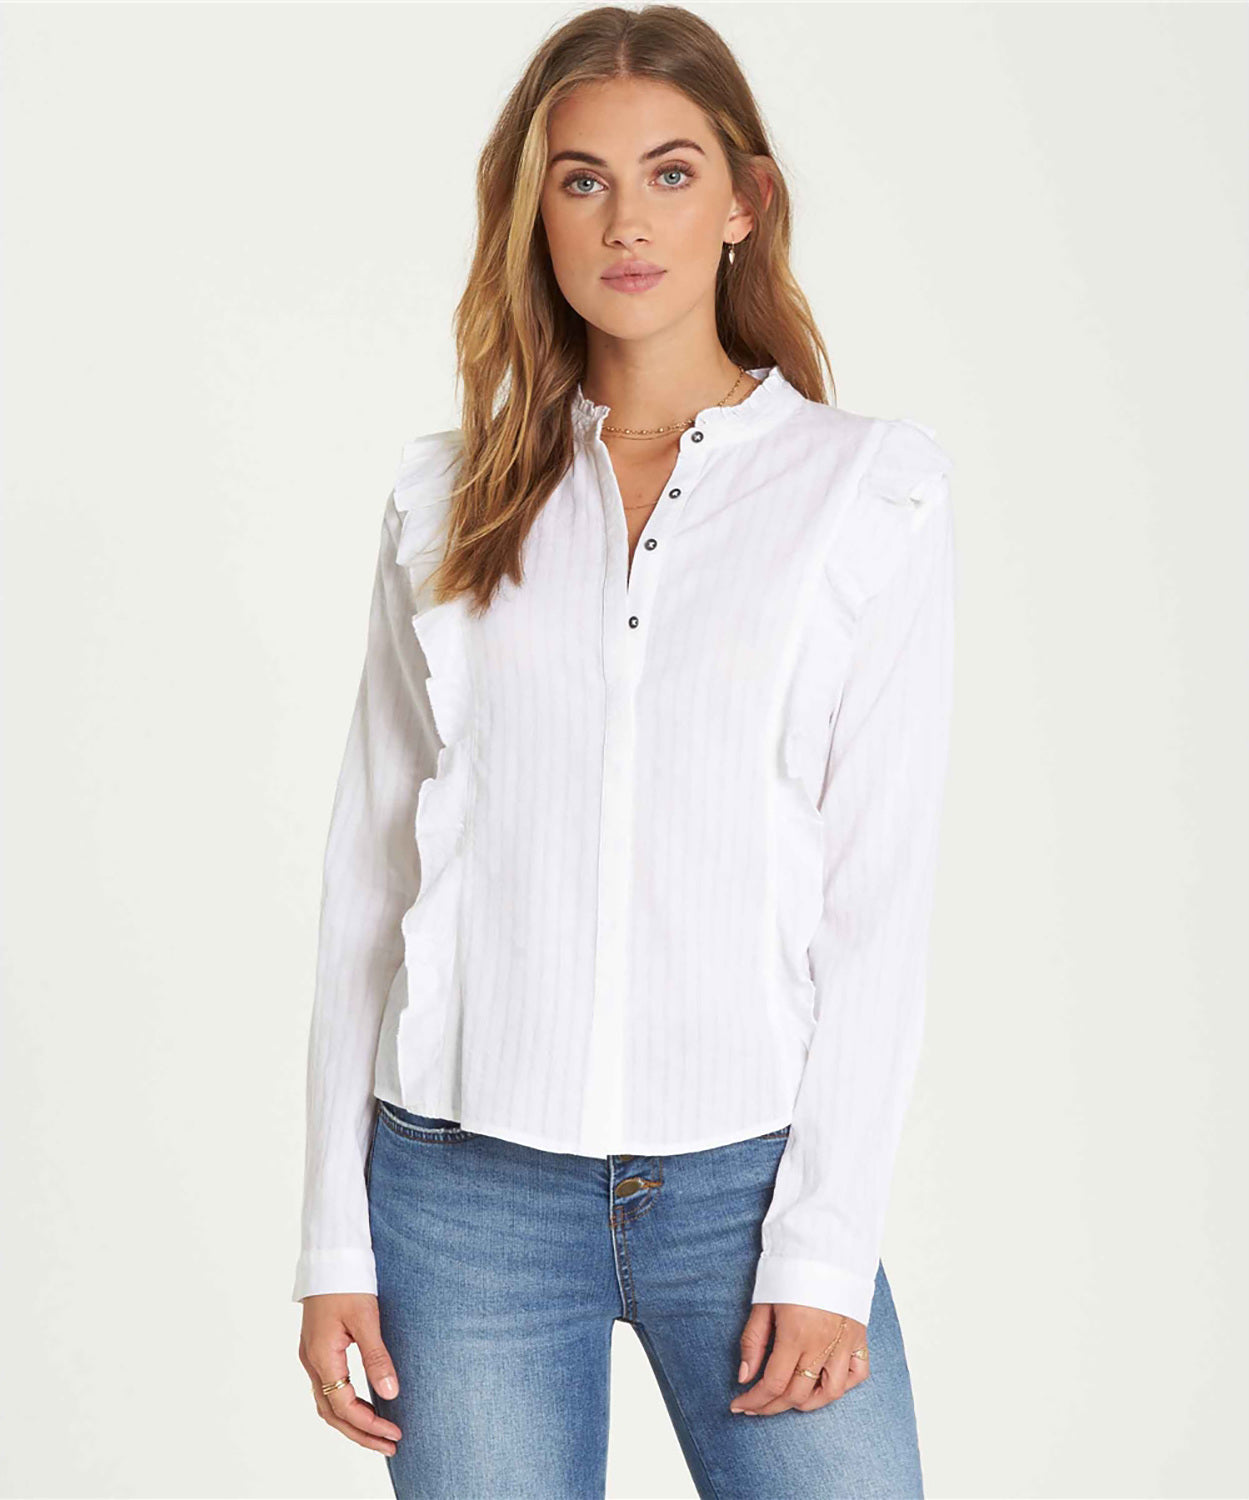 601a47fb Billabong Women's Babe Season Button Down Shirt | Altitude Sports